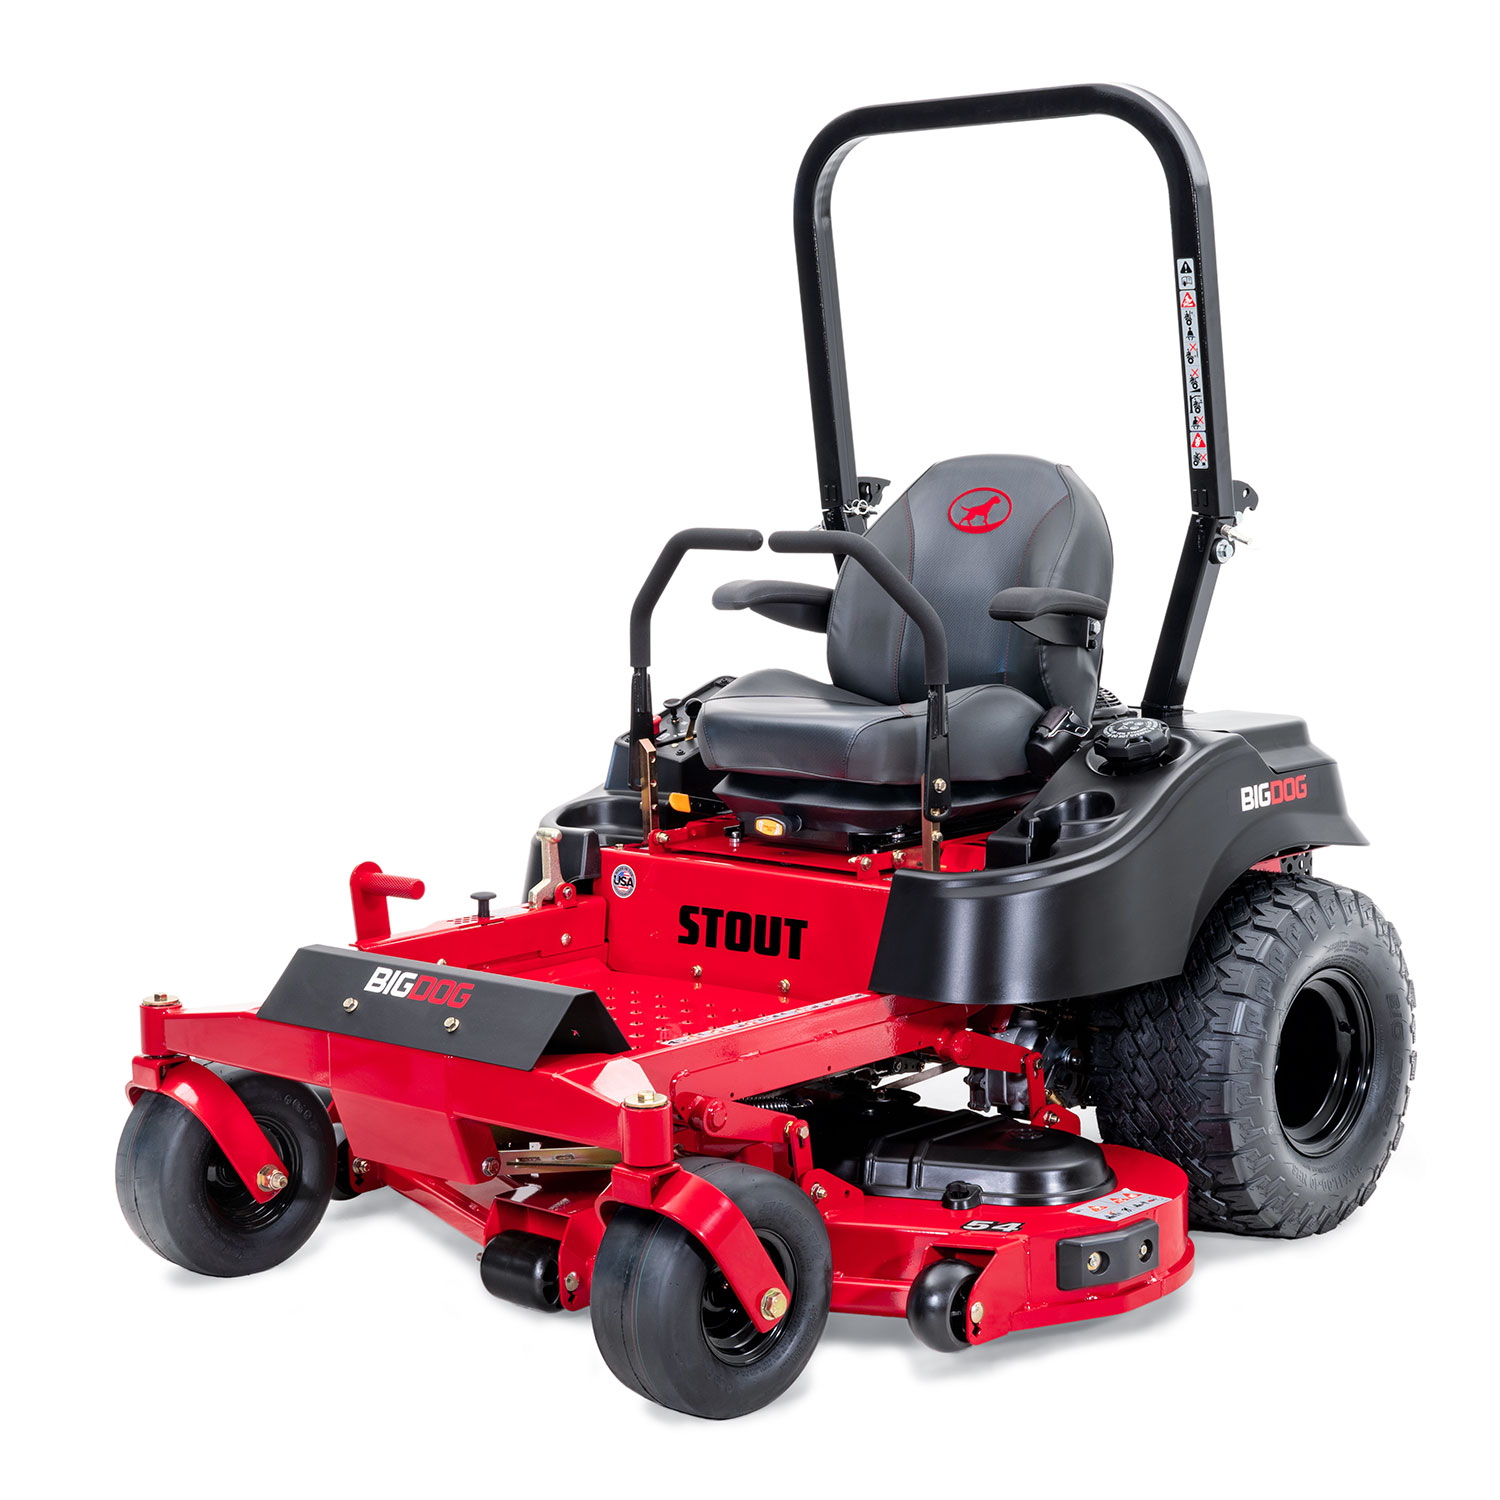 Image of the front three quarters of a red zero-turn mower showing the trim edge of the deck